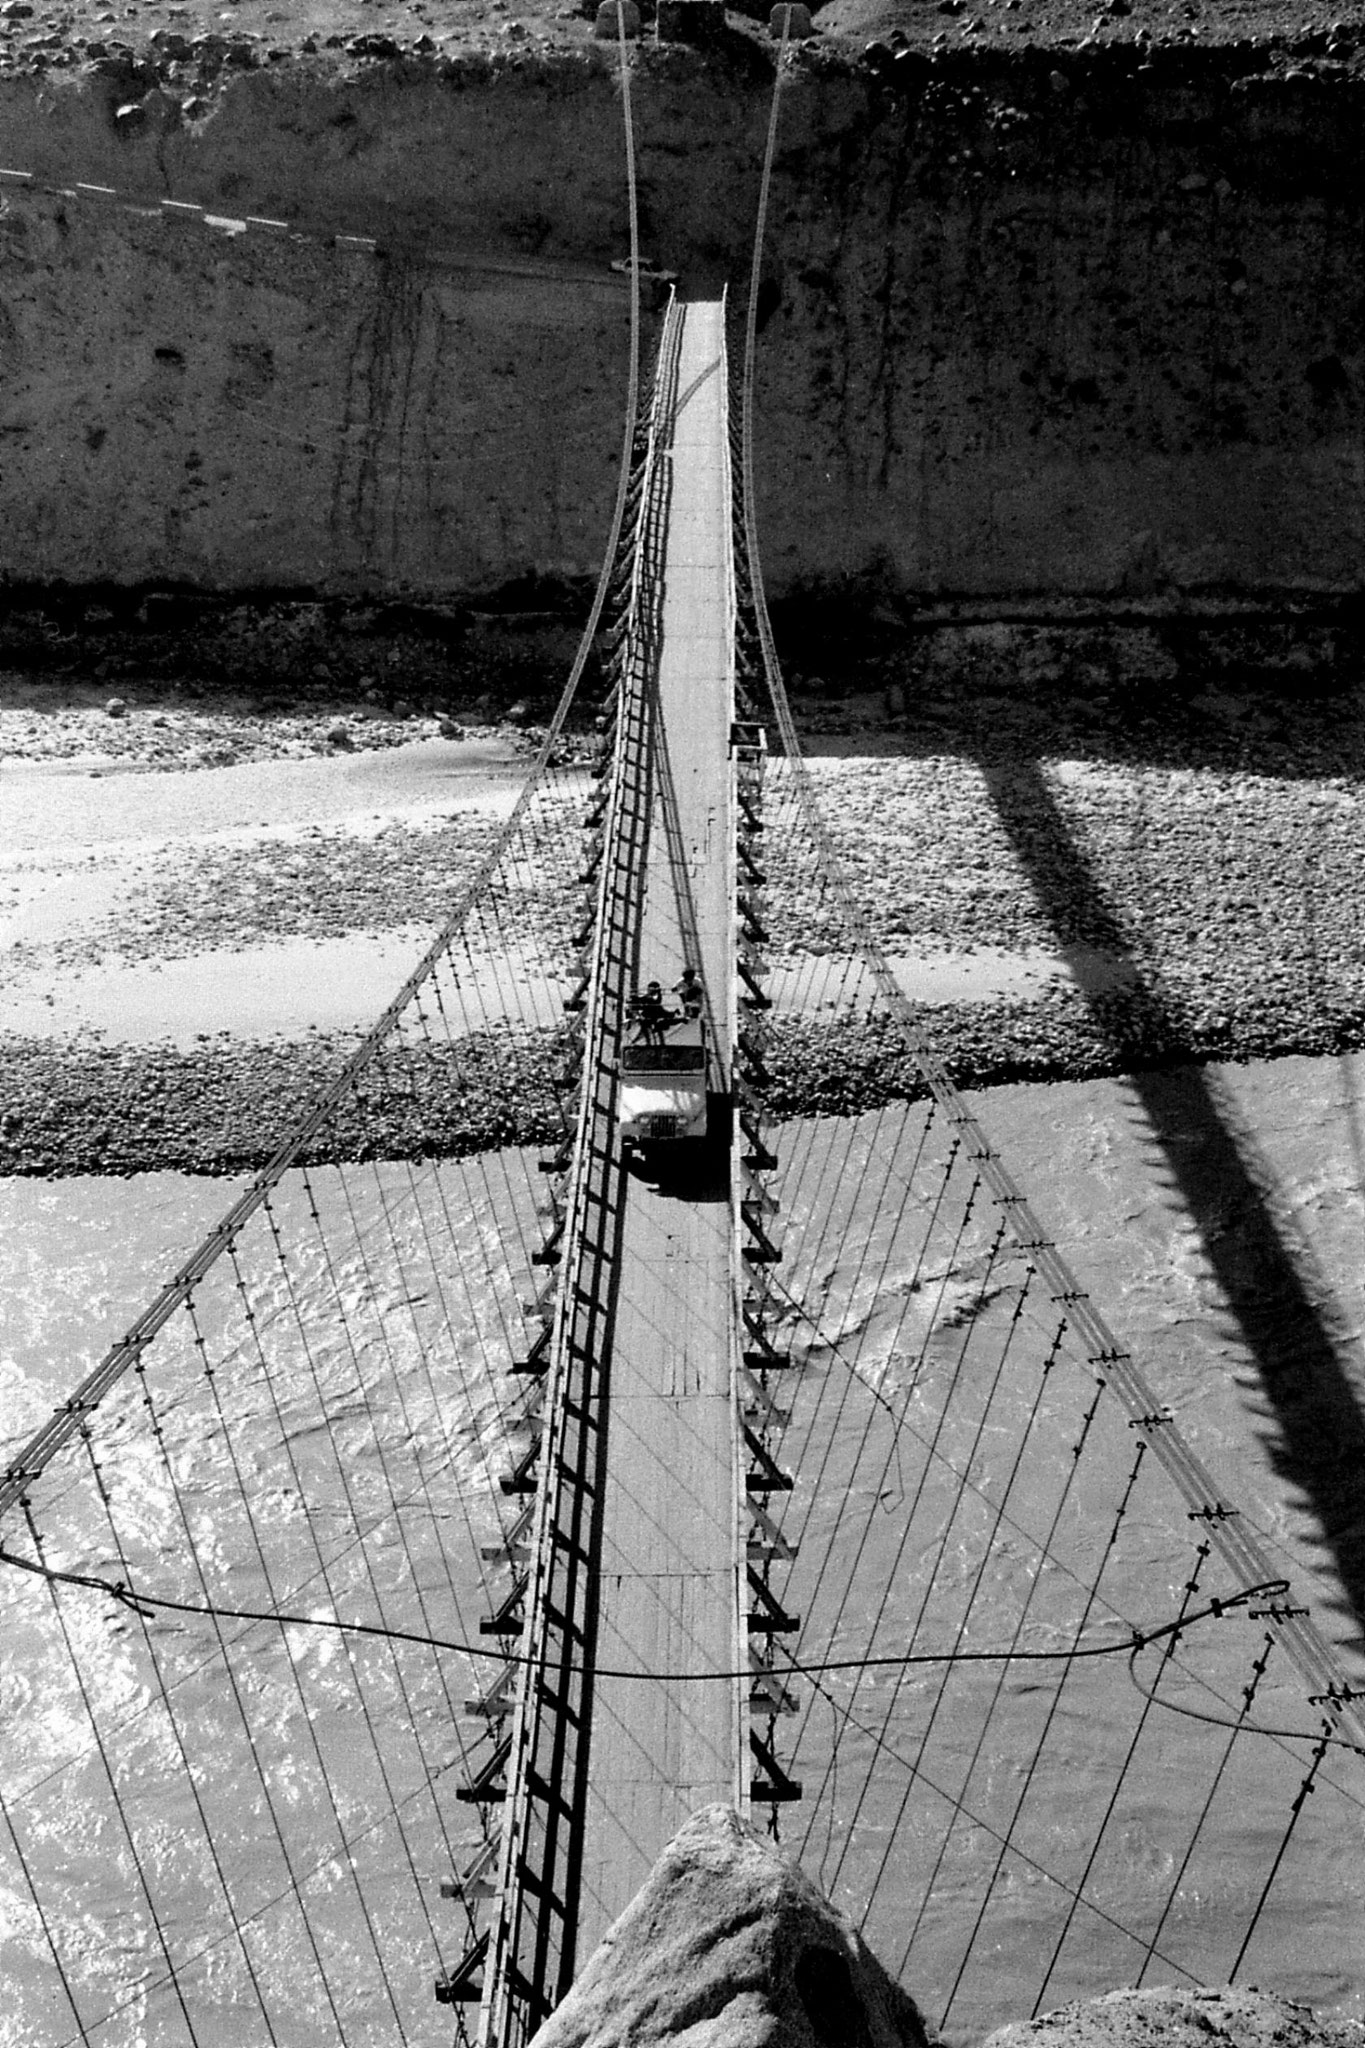 14/9/1989: 26: Gilgit suspension bridge